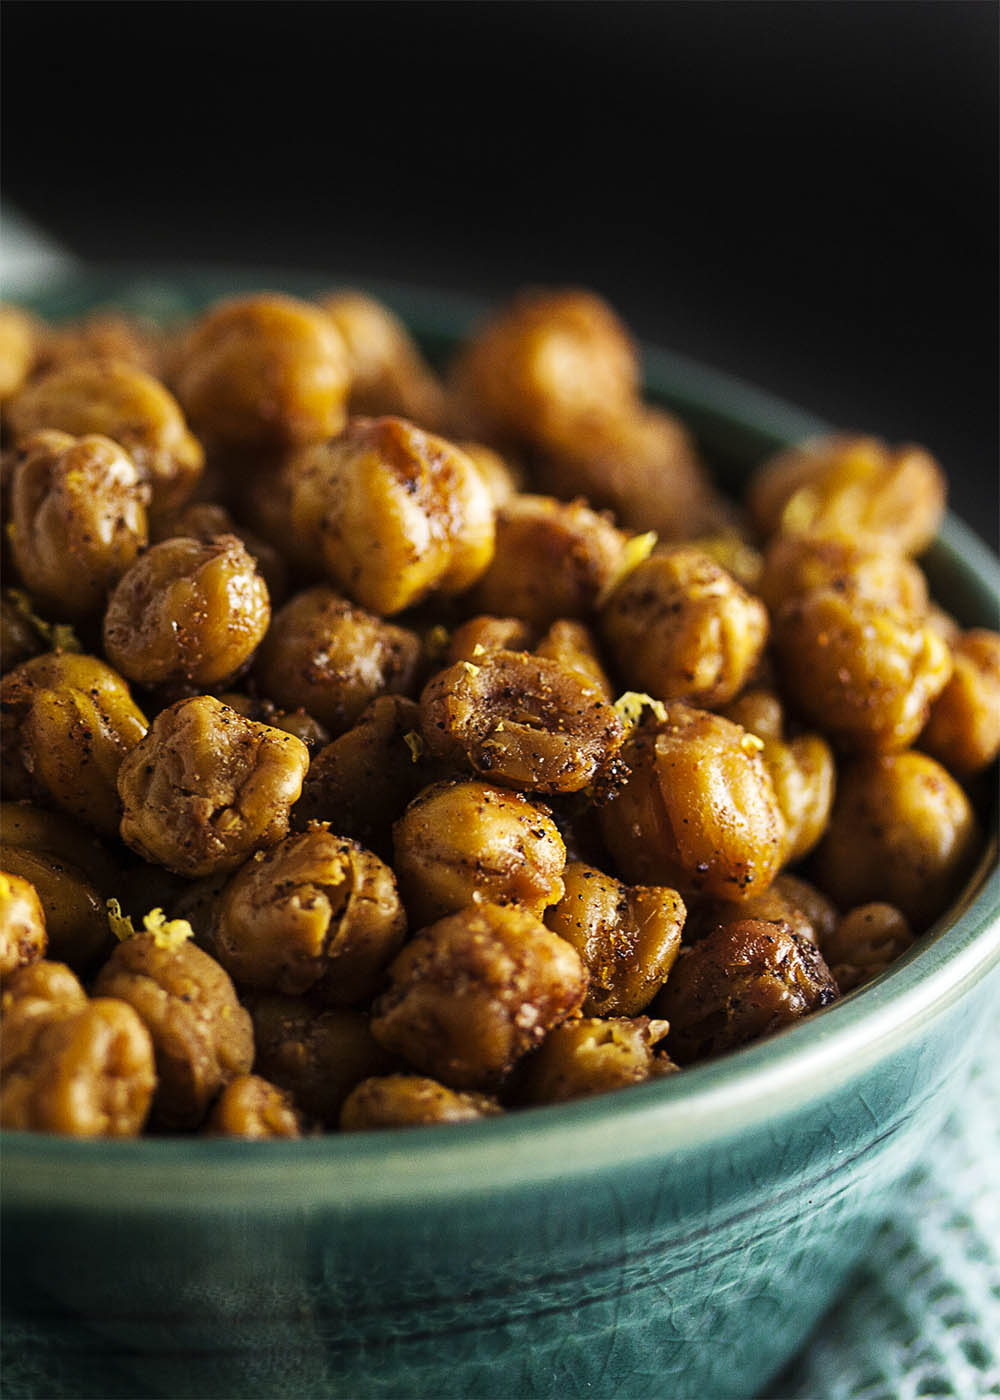 Spiced Dry Roasted Chickpeas - Dry roasting chickpeas produces an incredibly crunchy, tasty, and easy snack. And it's even healthy too! Just be careful - they're addictive. | justalittlebitofbacon.com